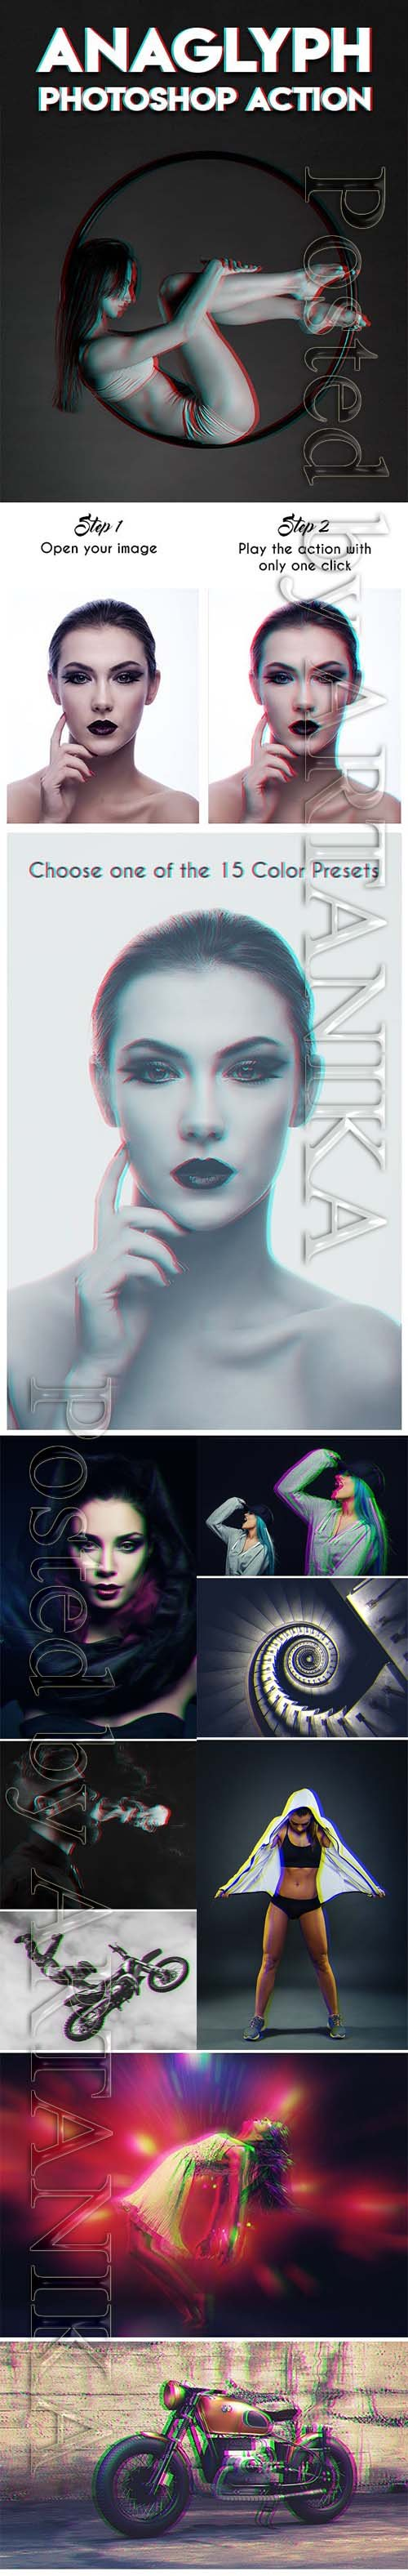 Anaglyph Photoshop Action 20035998